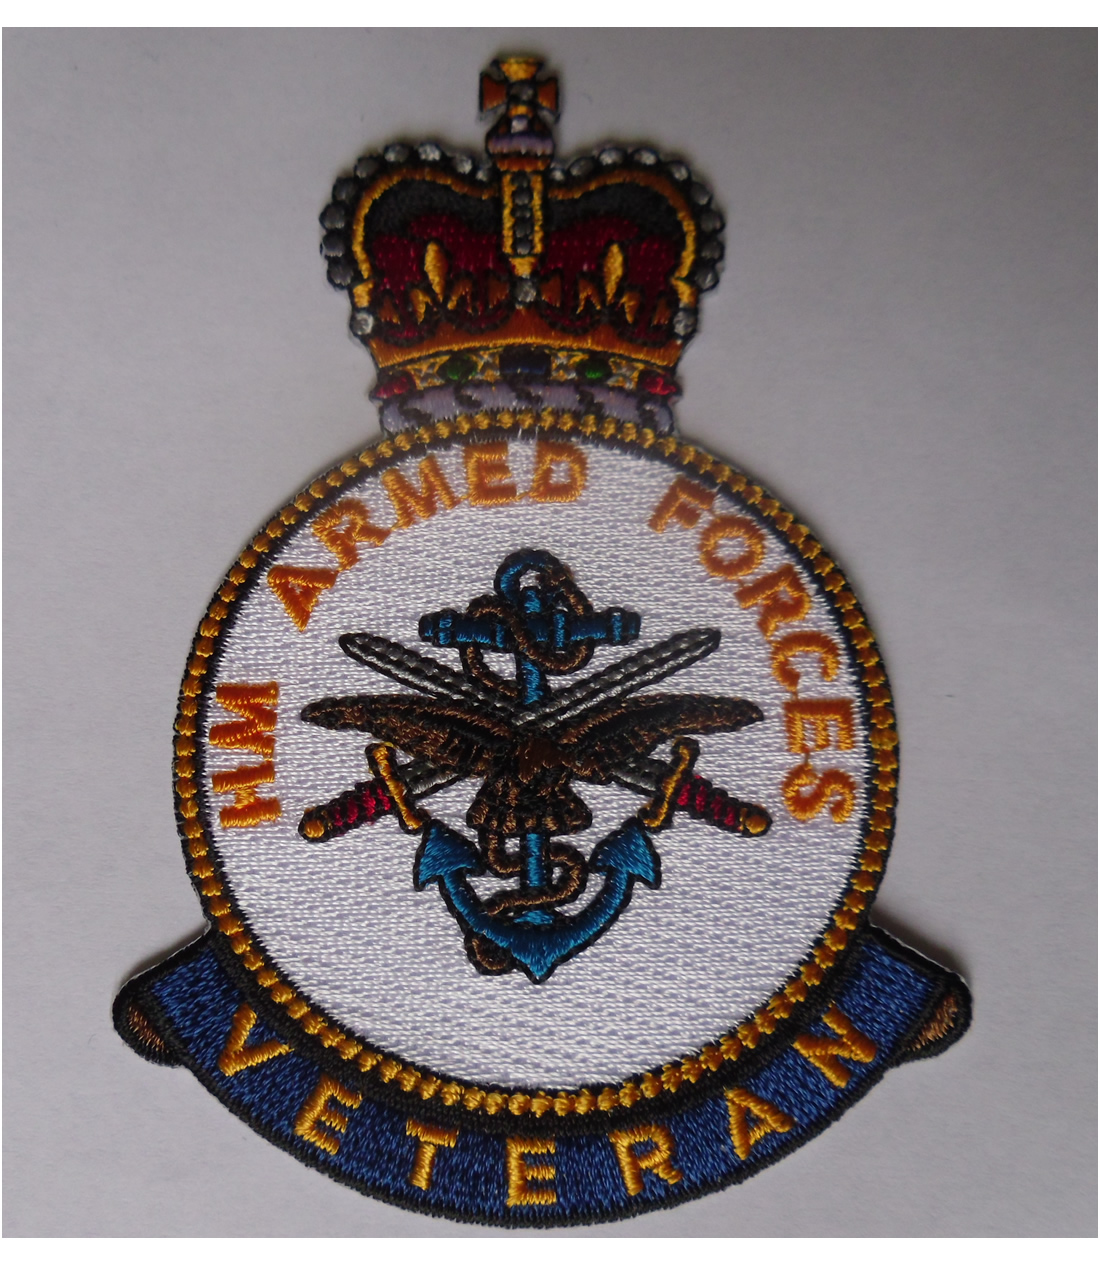 HM Armed Forces Veteran iron on embroidered patch - Click Image to Close